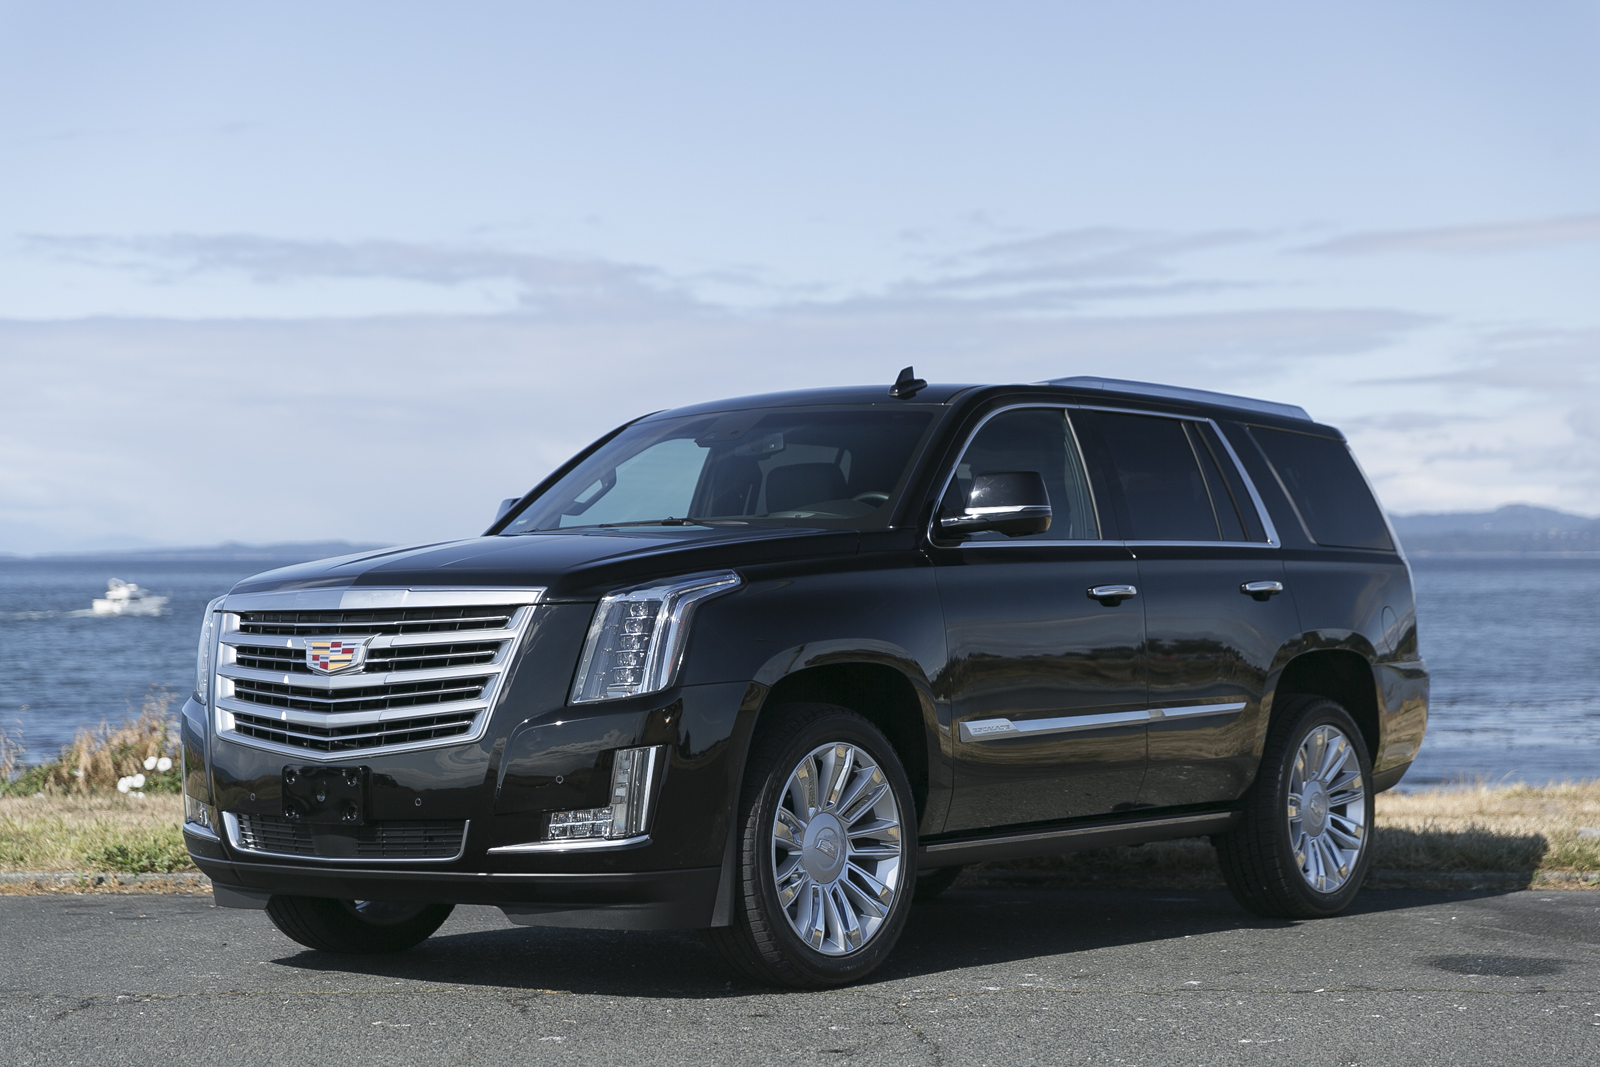 2016 Cadillac Escalade Interior >> 2016 Cadillac Escalade Platinum - Silver Arrow Cars Ltd.